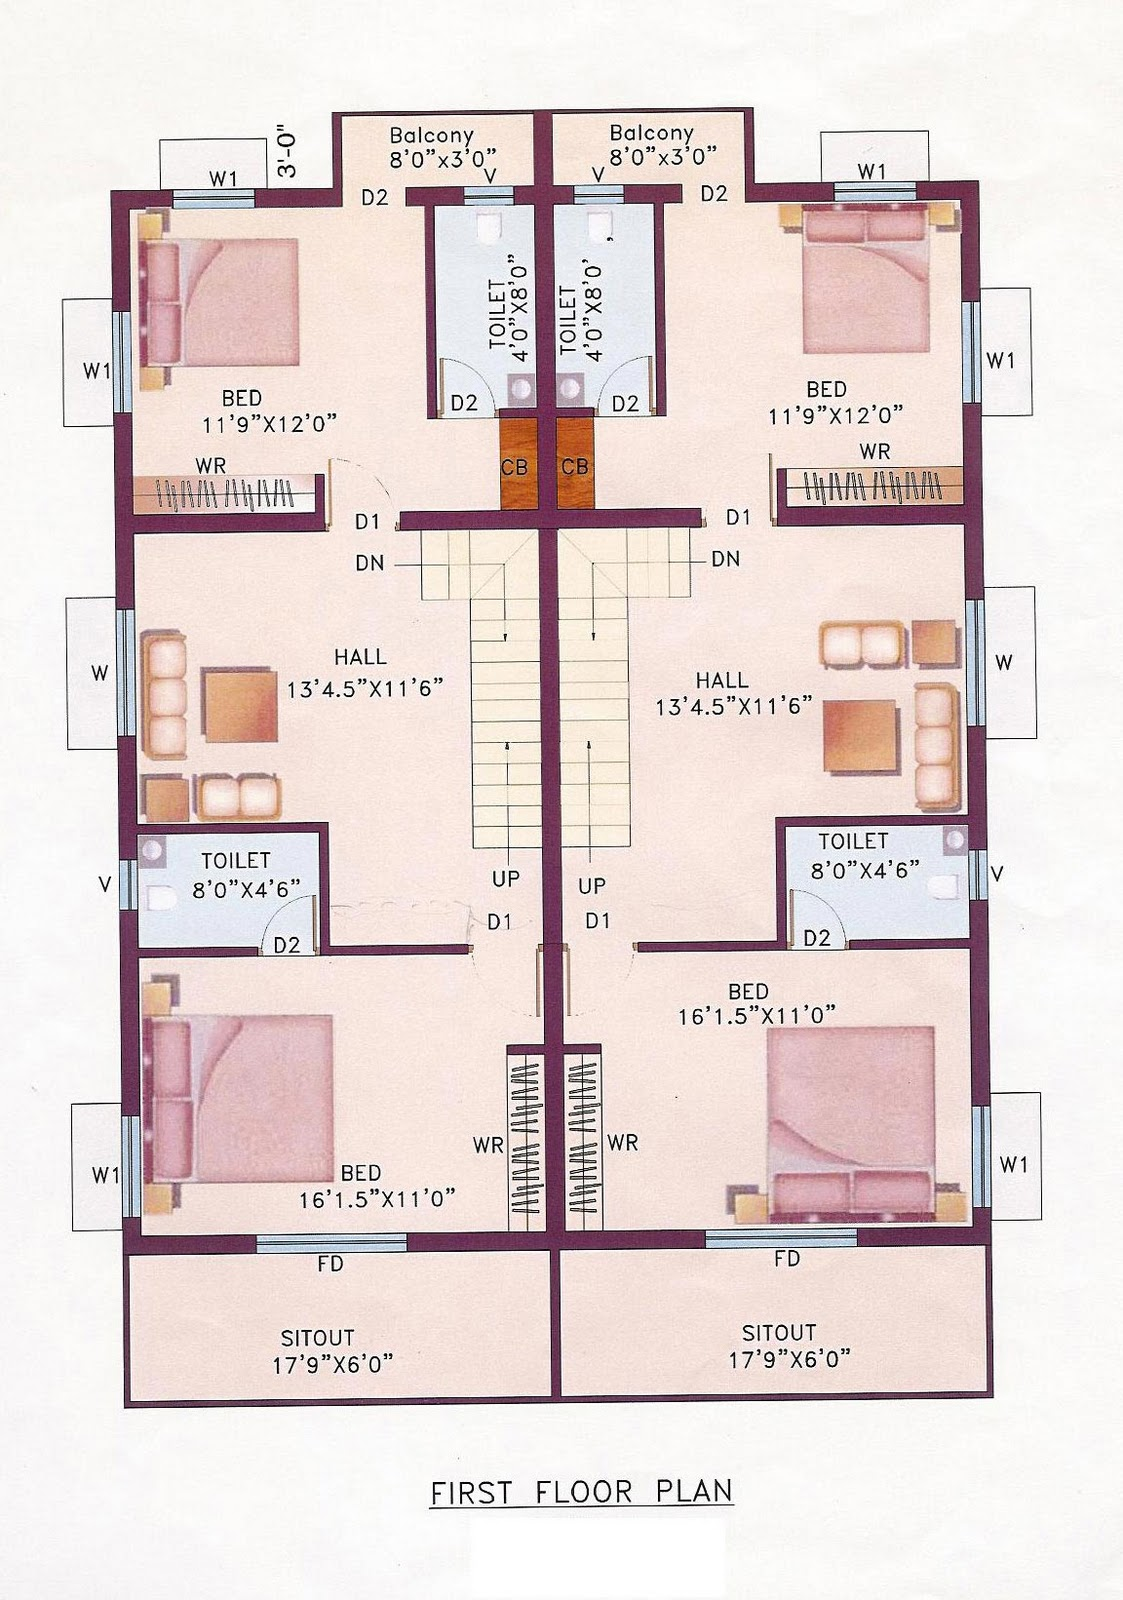 House plans and design house plans india with photos for House plan in india free design